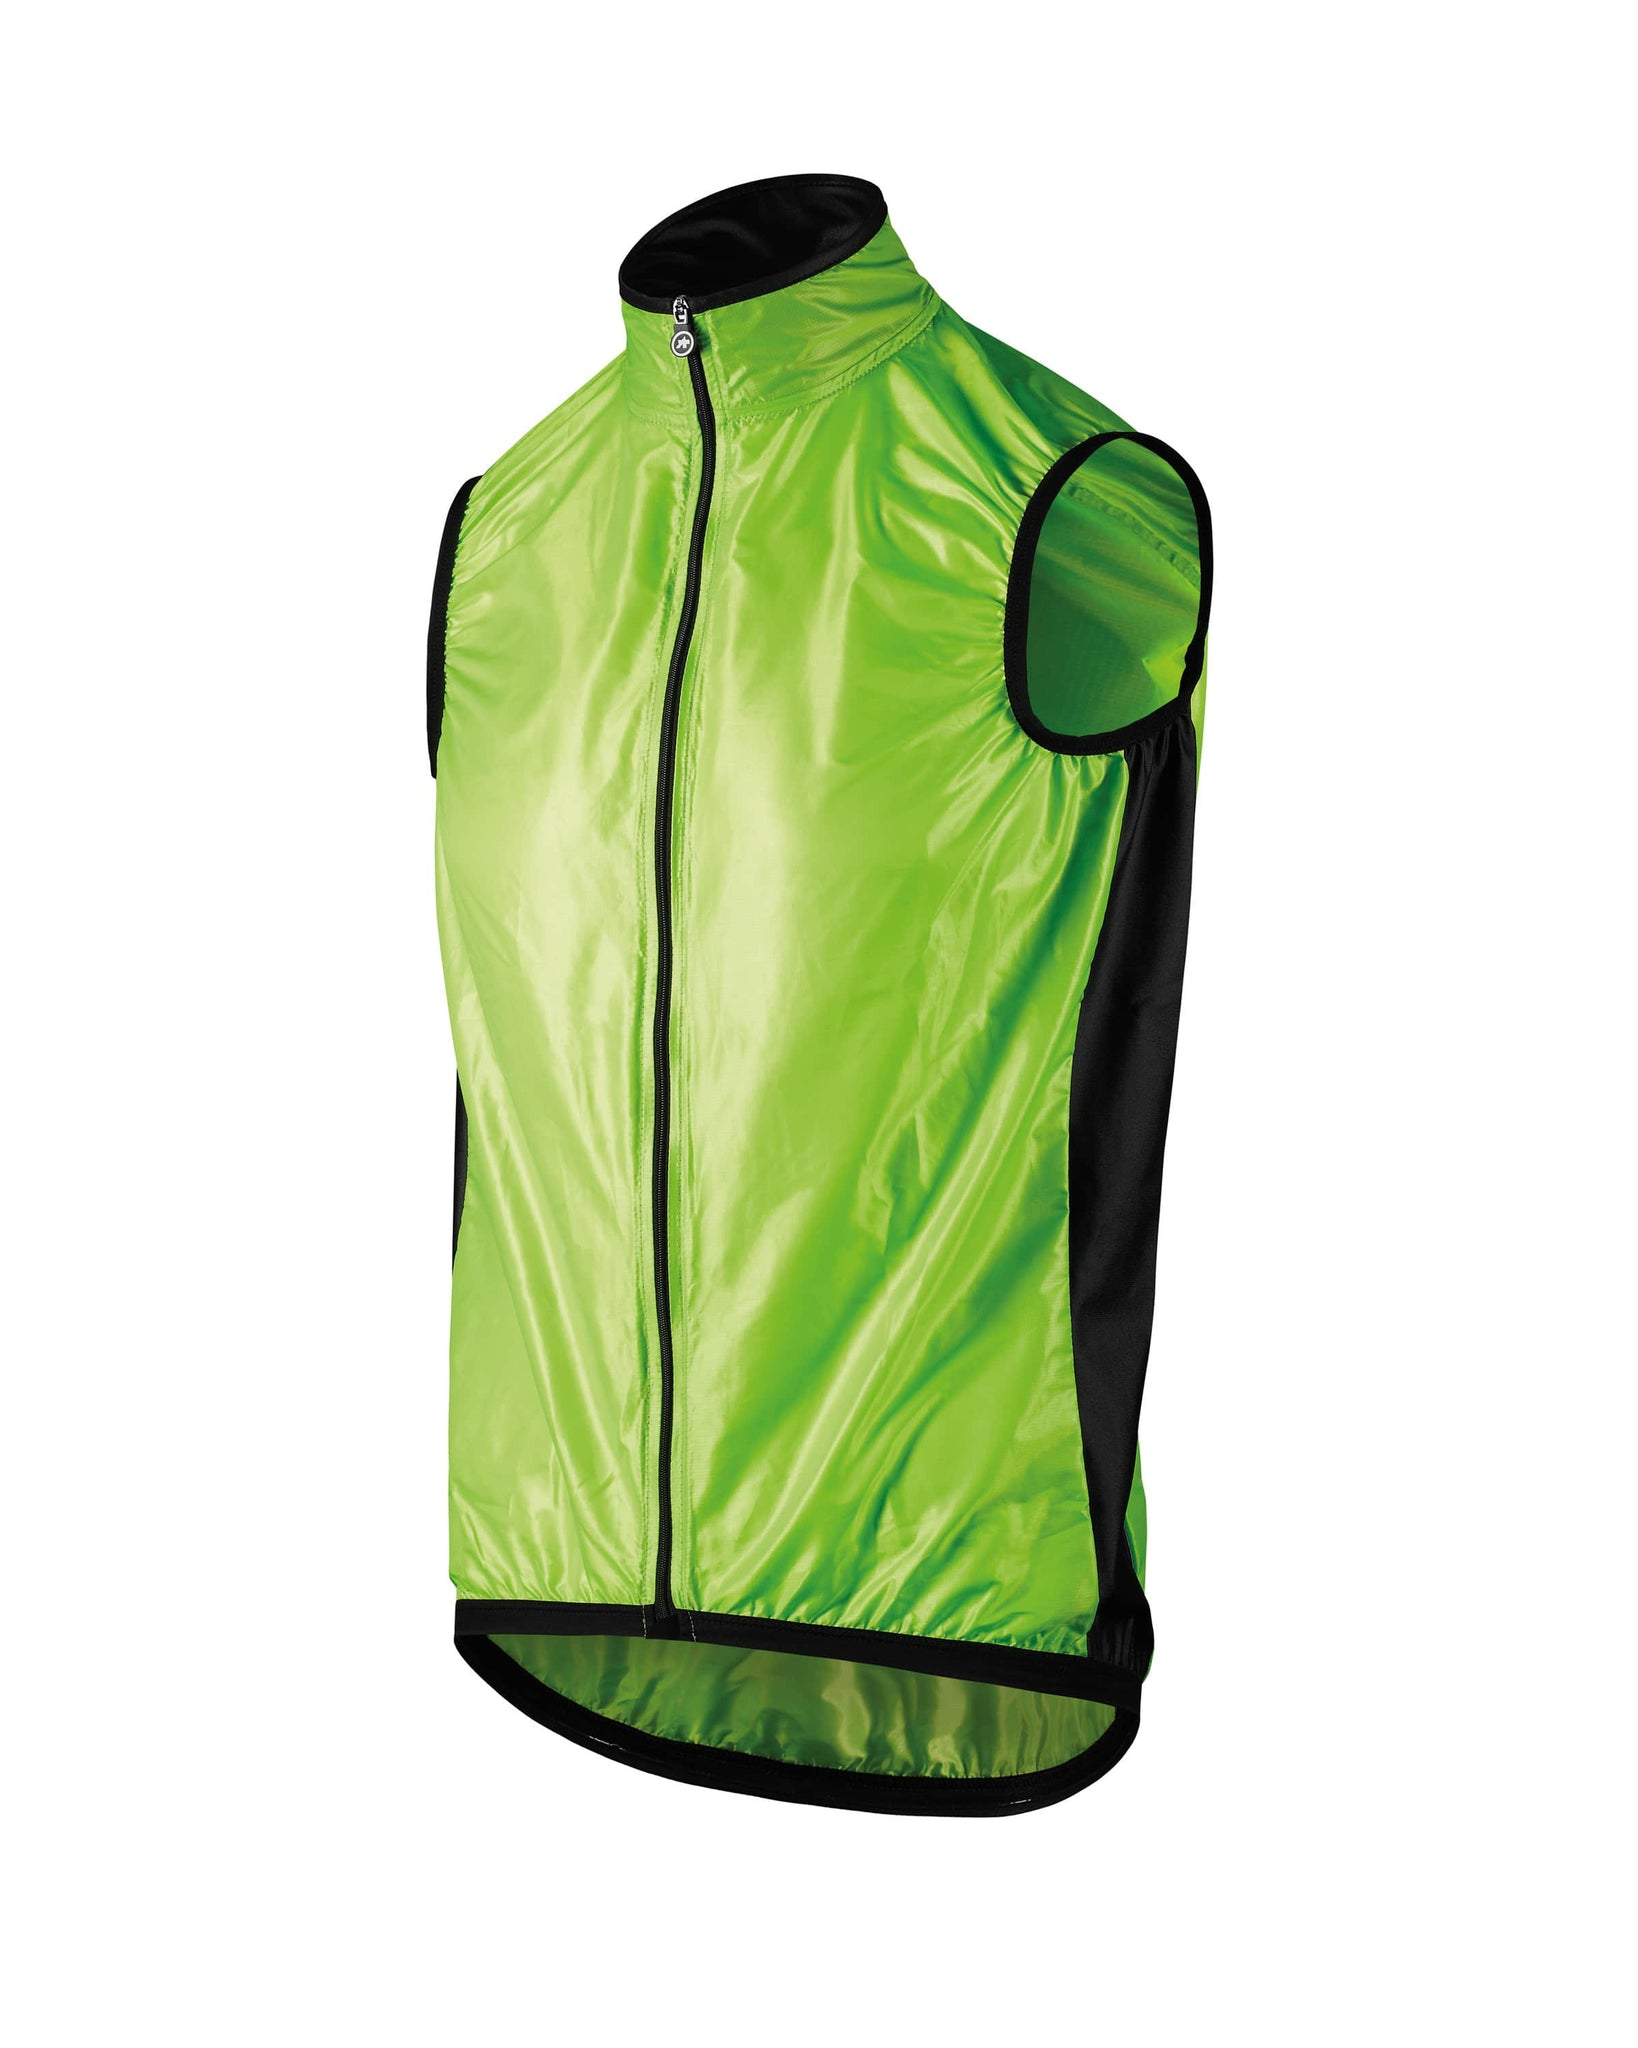 【ASSOS / アソス】MILLE GT WIND VEST visibility green(軽量 ウィンドシェル ベスト)